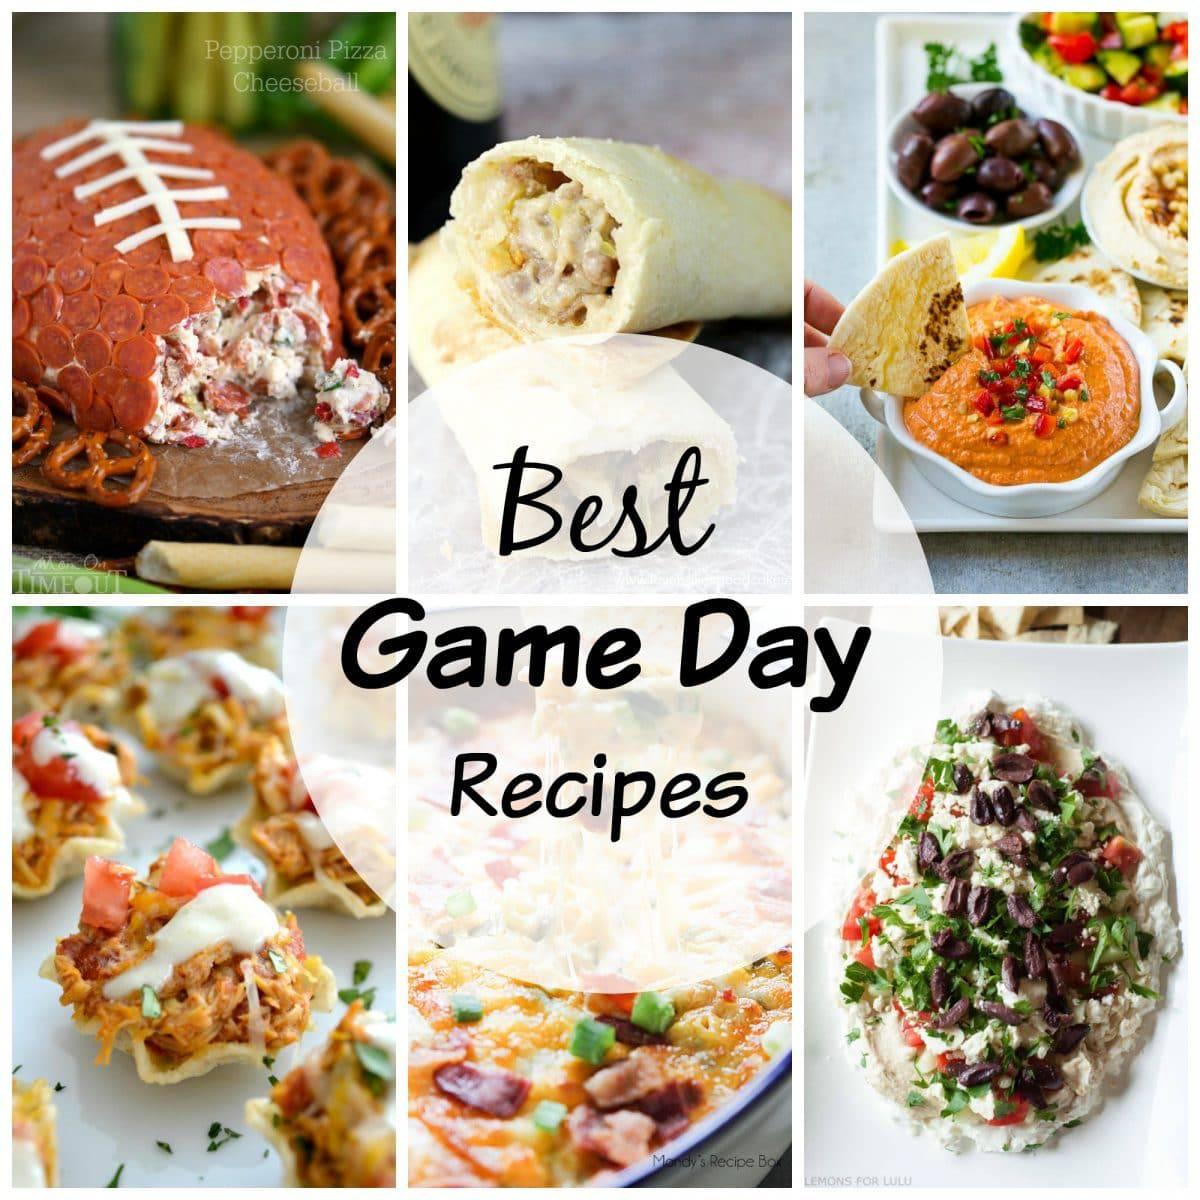 Here is a collection of the Best Game Day Recipes to share with your friends!